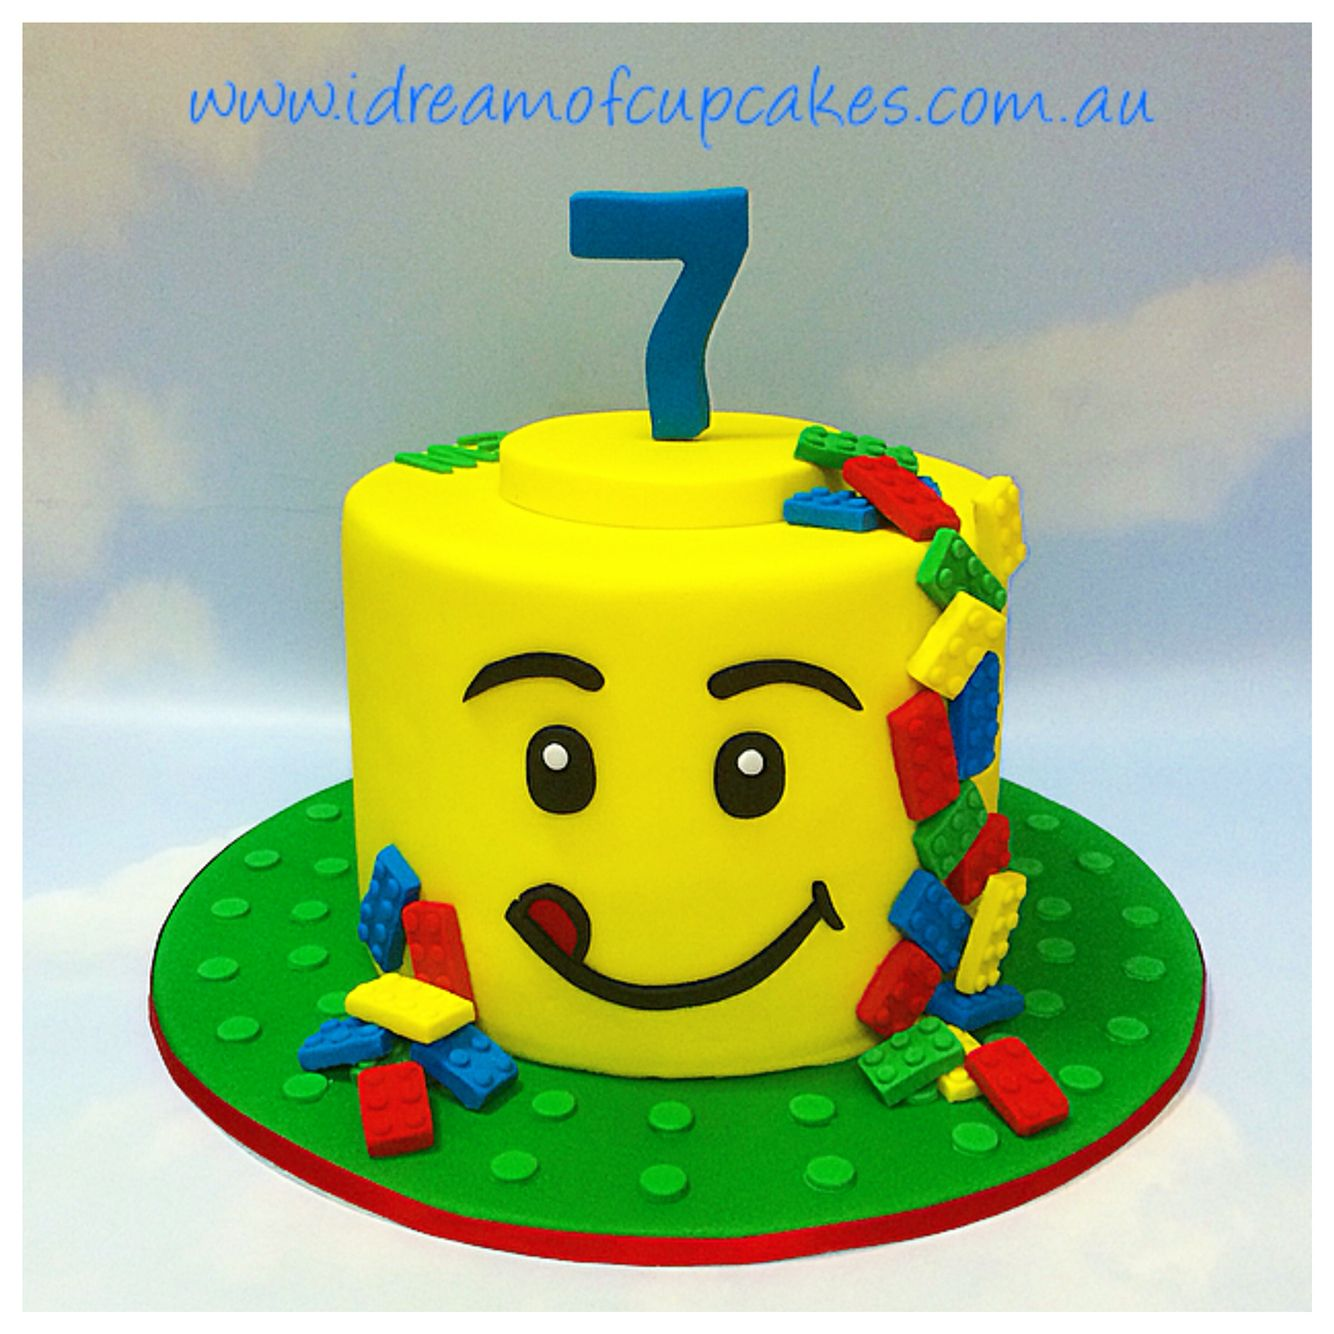 Tremendous Lego Head Cake With Images Lego Birthday Cake Lego Head Cake Funny Birthday Cards Online Sheoxdamsfinfo